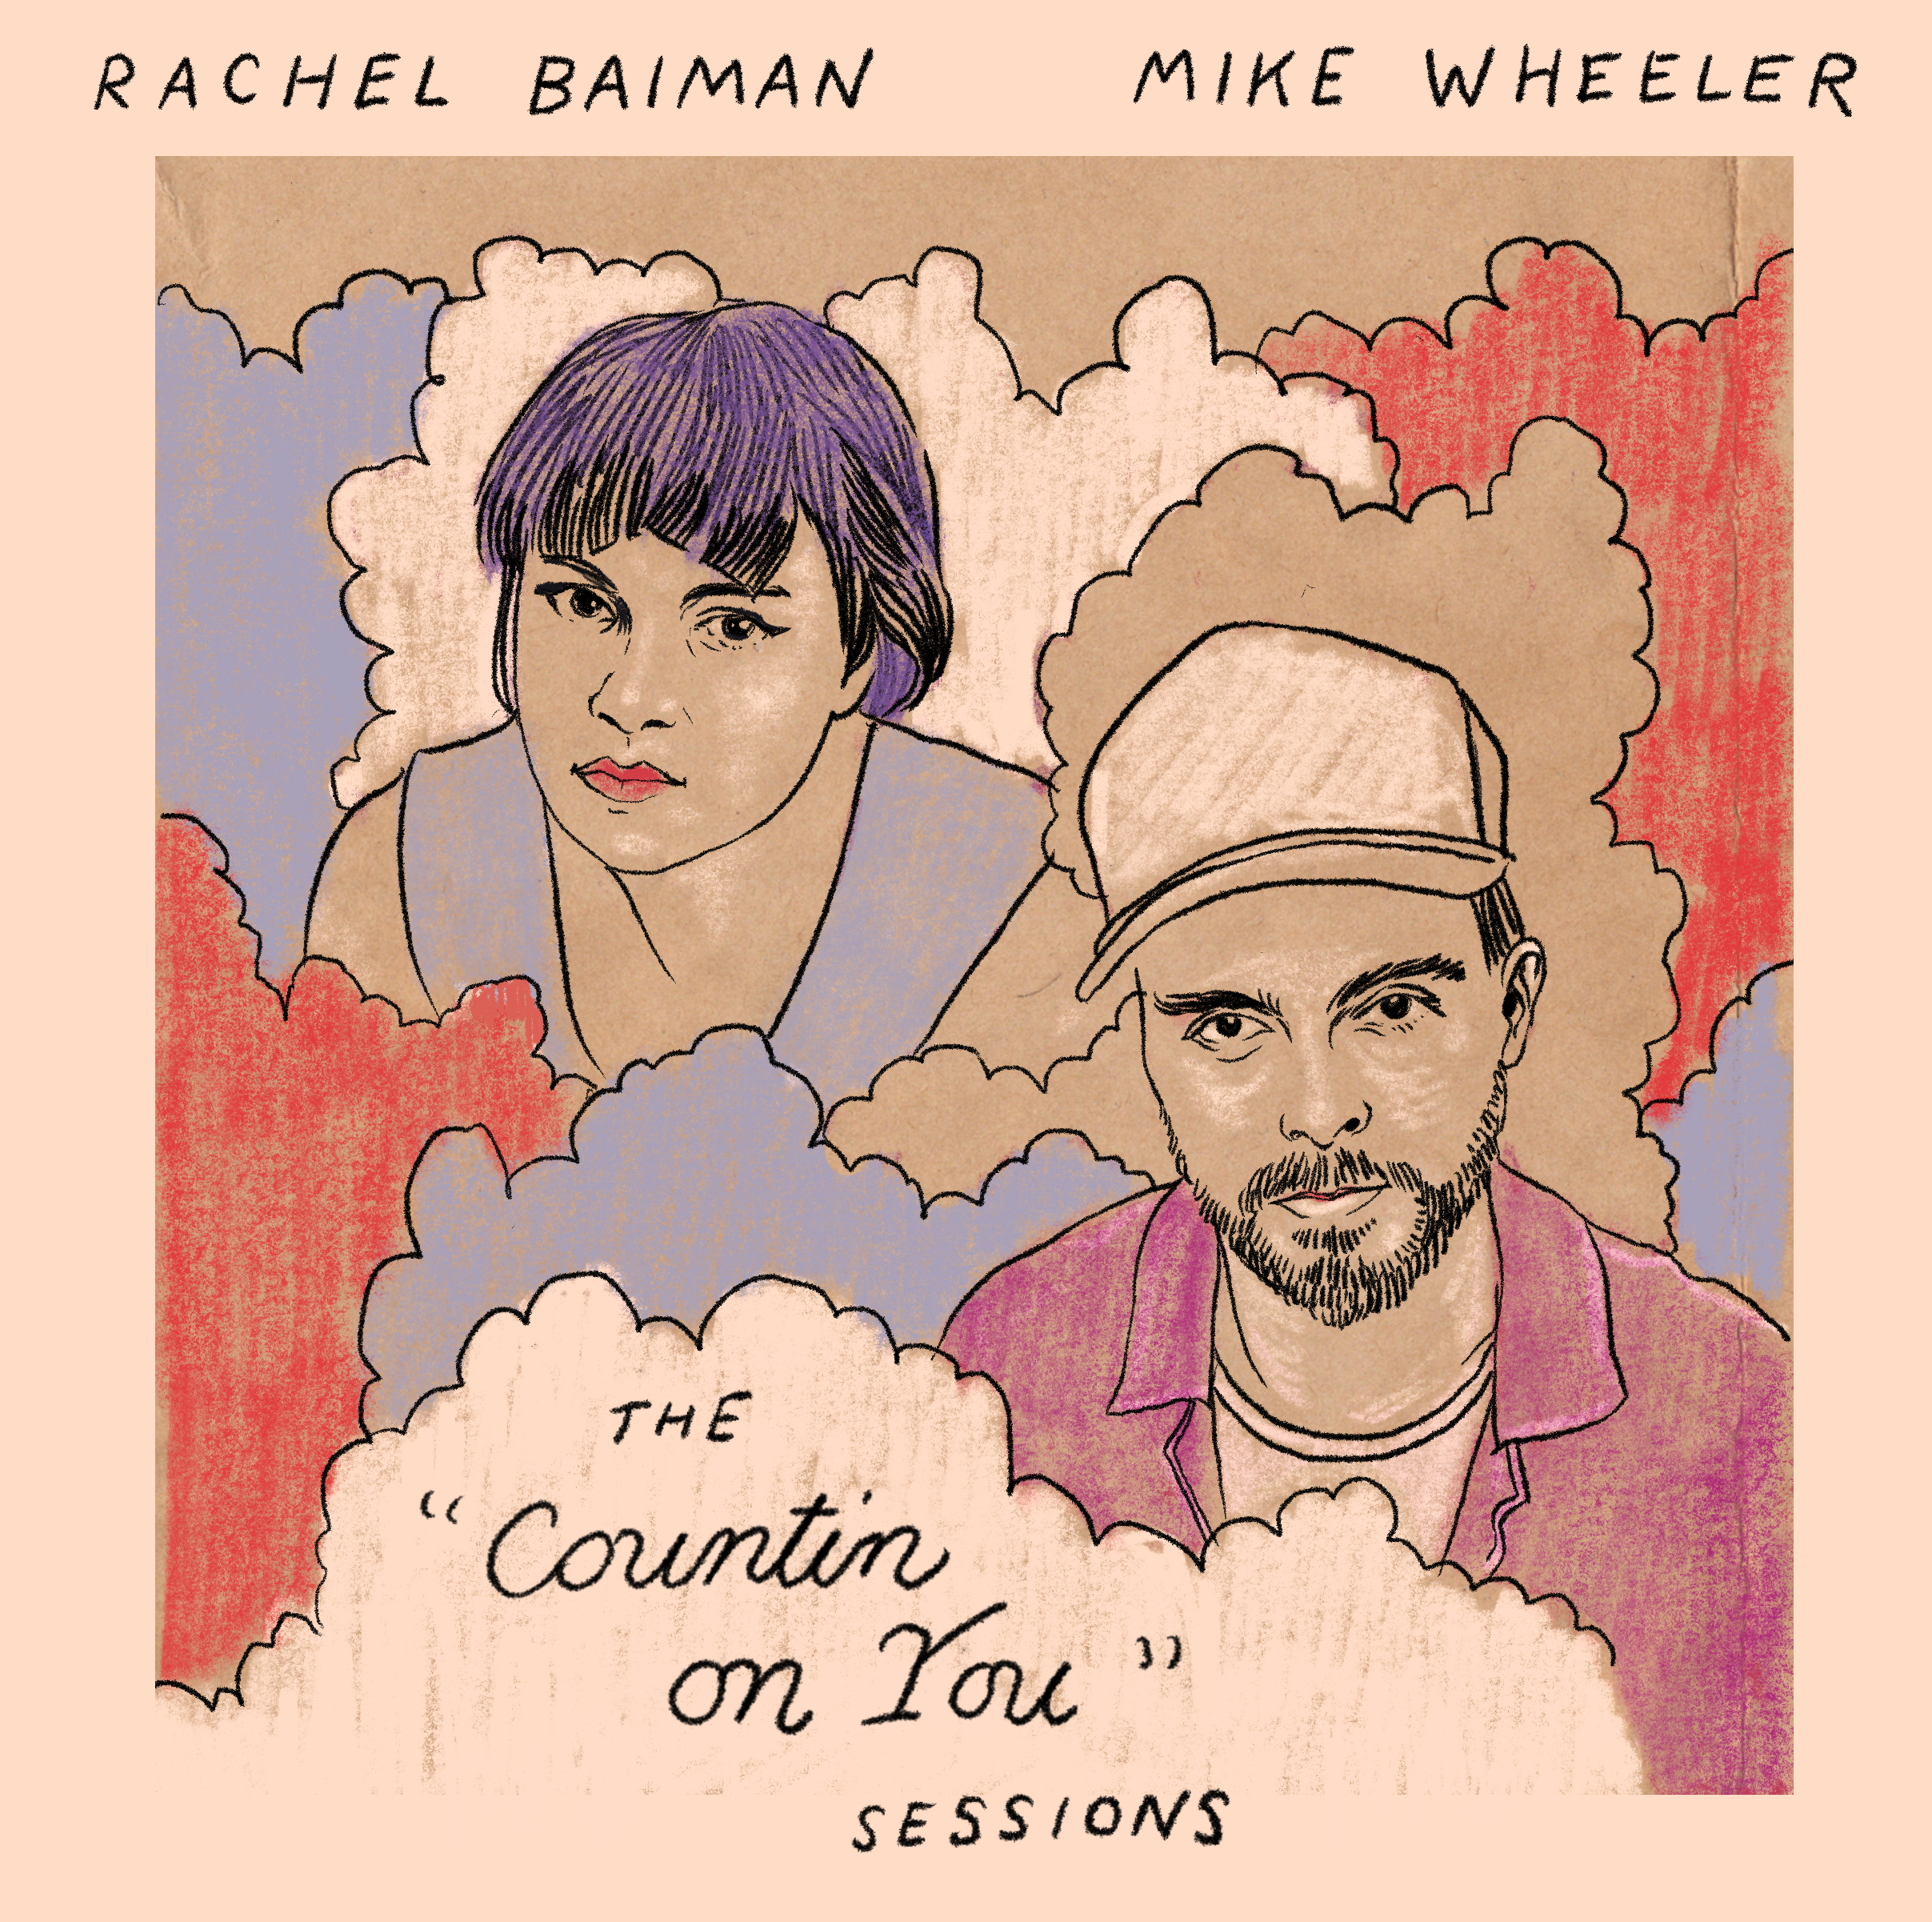 Rachel Baiman & Mike Wheeler - 'The Countin On You sessions' - artwork (300dpi)